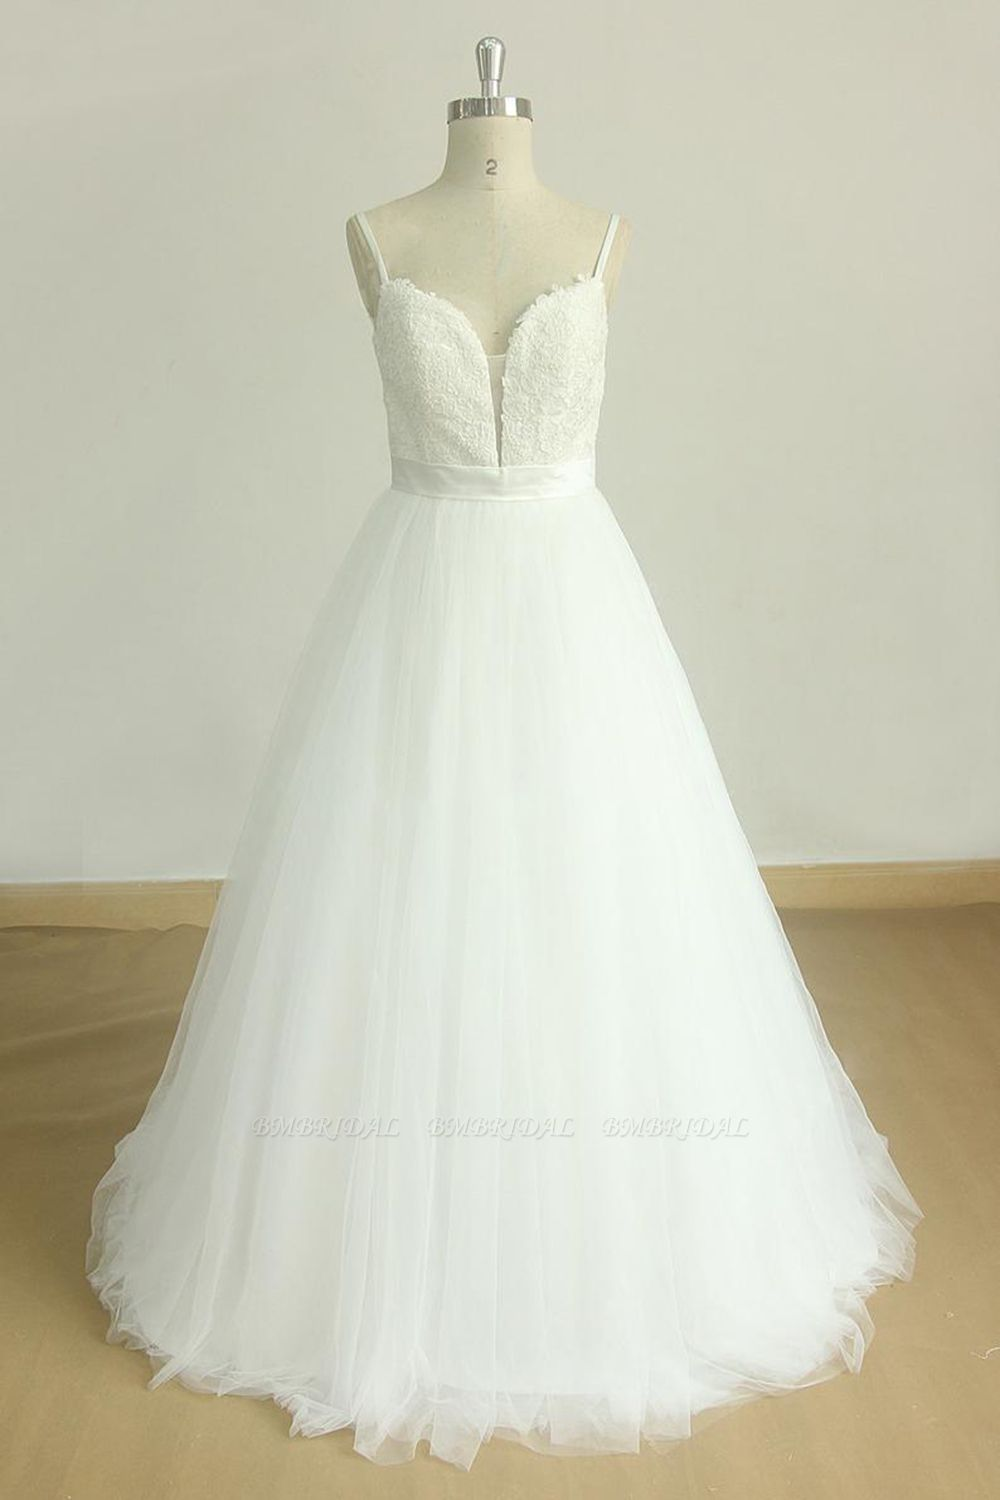 BMbridal Chic Spaghetti Straps V-Neck Wedding Dresses White Tulle Appliques Bridal Gowns Online